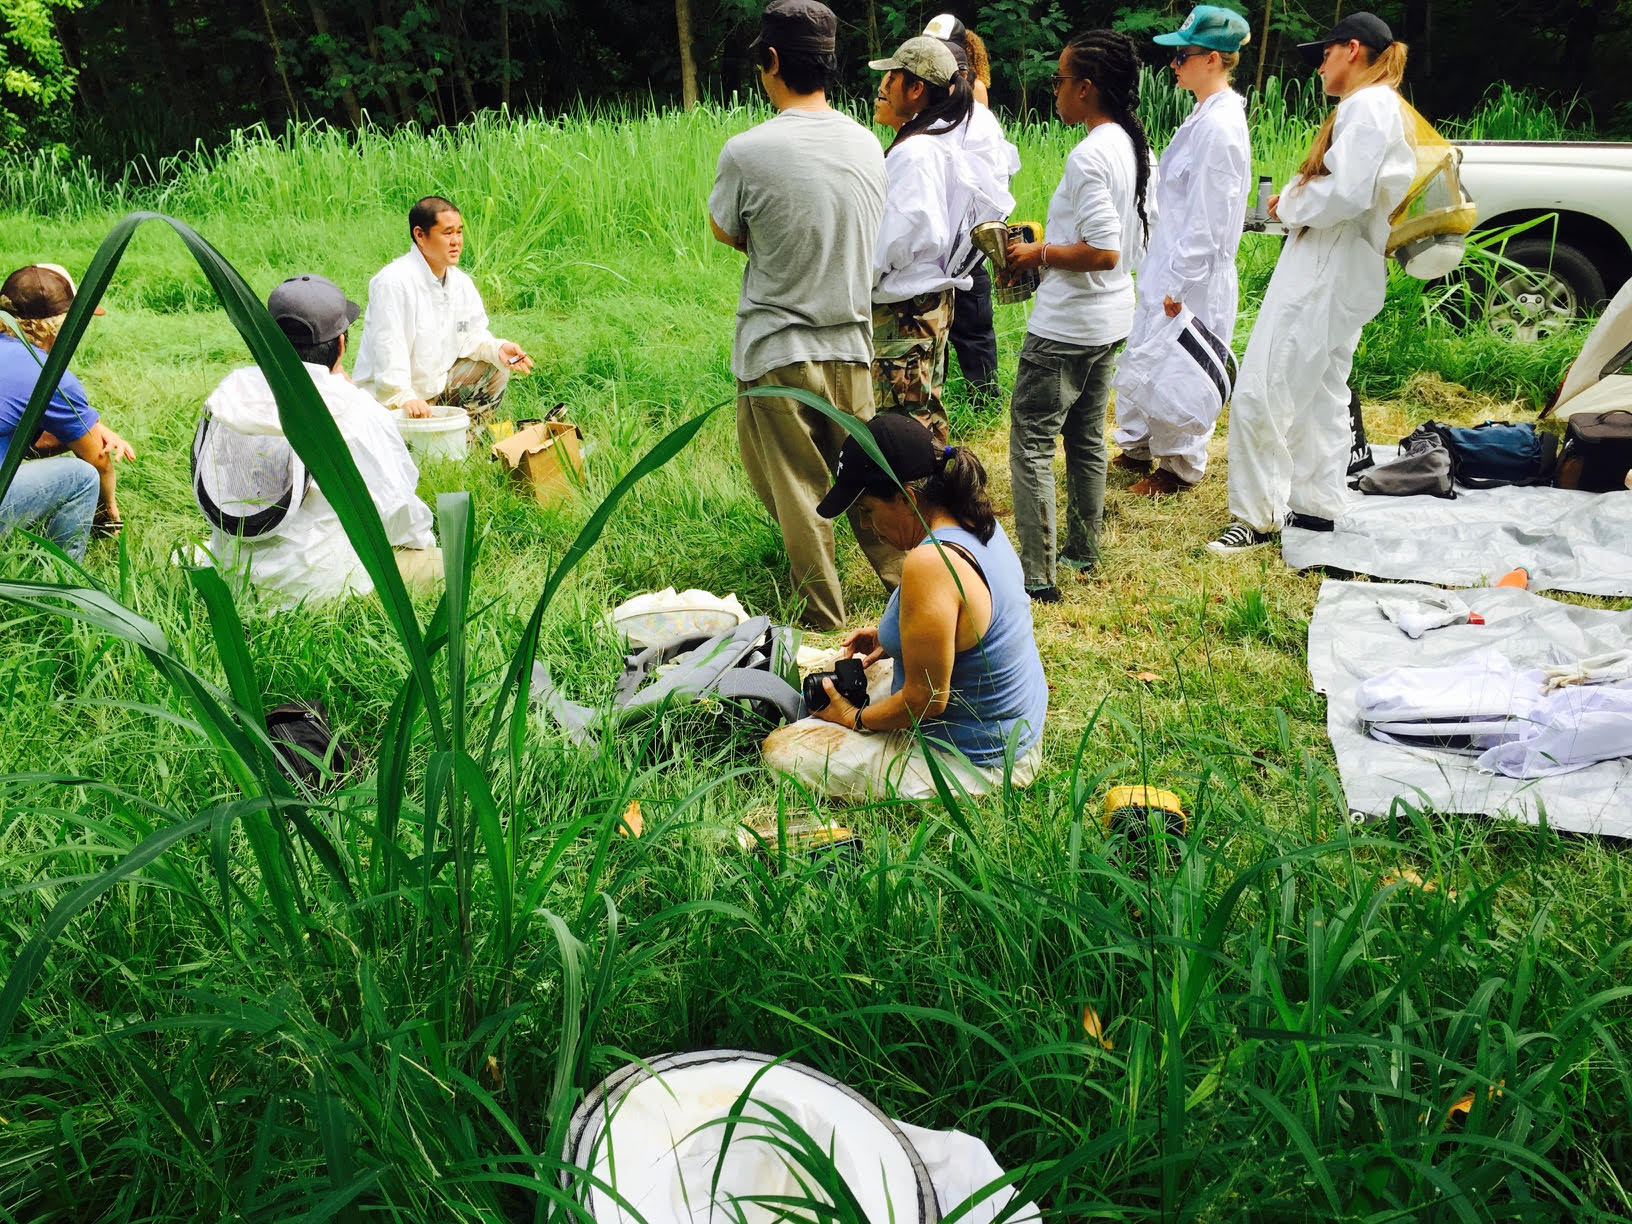 photo of an instructor and students outdoors. Students are mainly standing, dressed in Bee Keeper suits and an instructor is kneeling, talking to them.